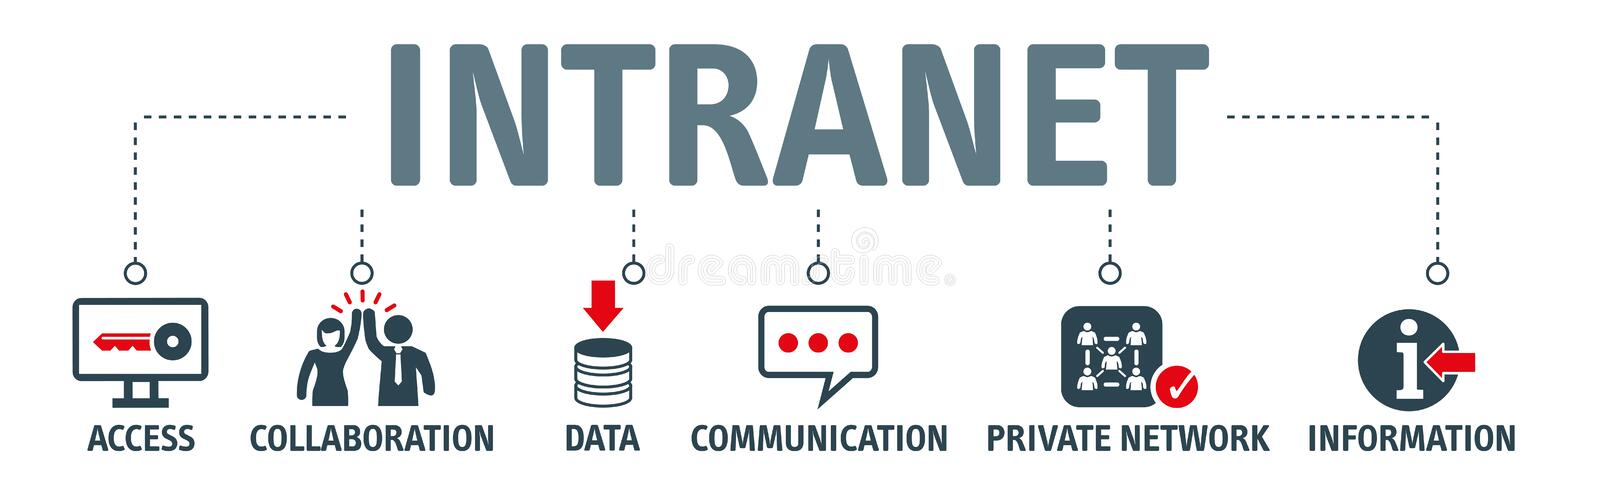 Intranet vector illustration concept with keywords and icons. Conceptual banner with icons showing INTRANET - Global Network Connection Technology vector vector illustration